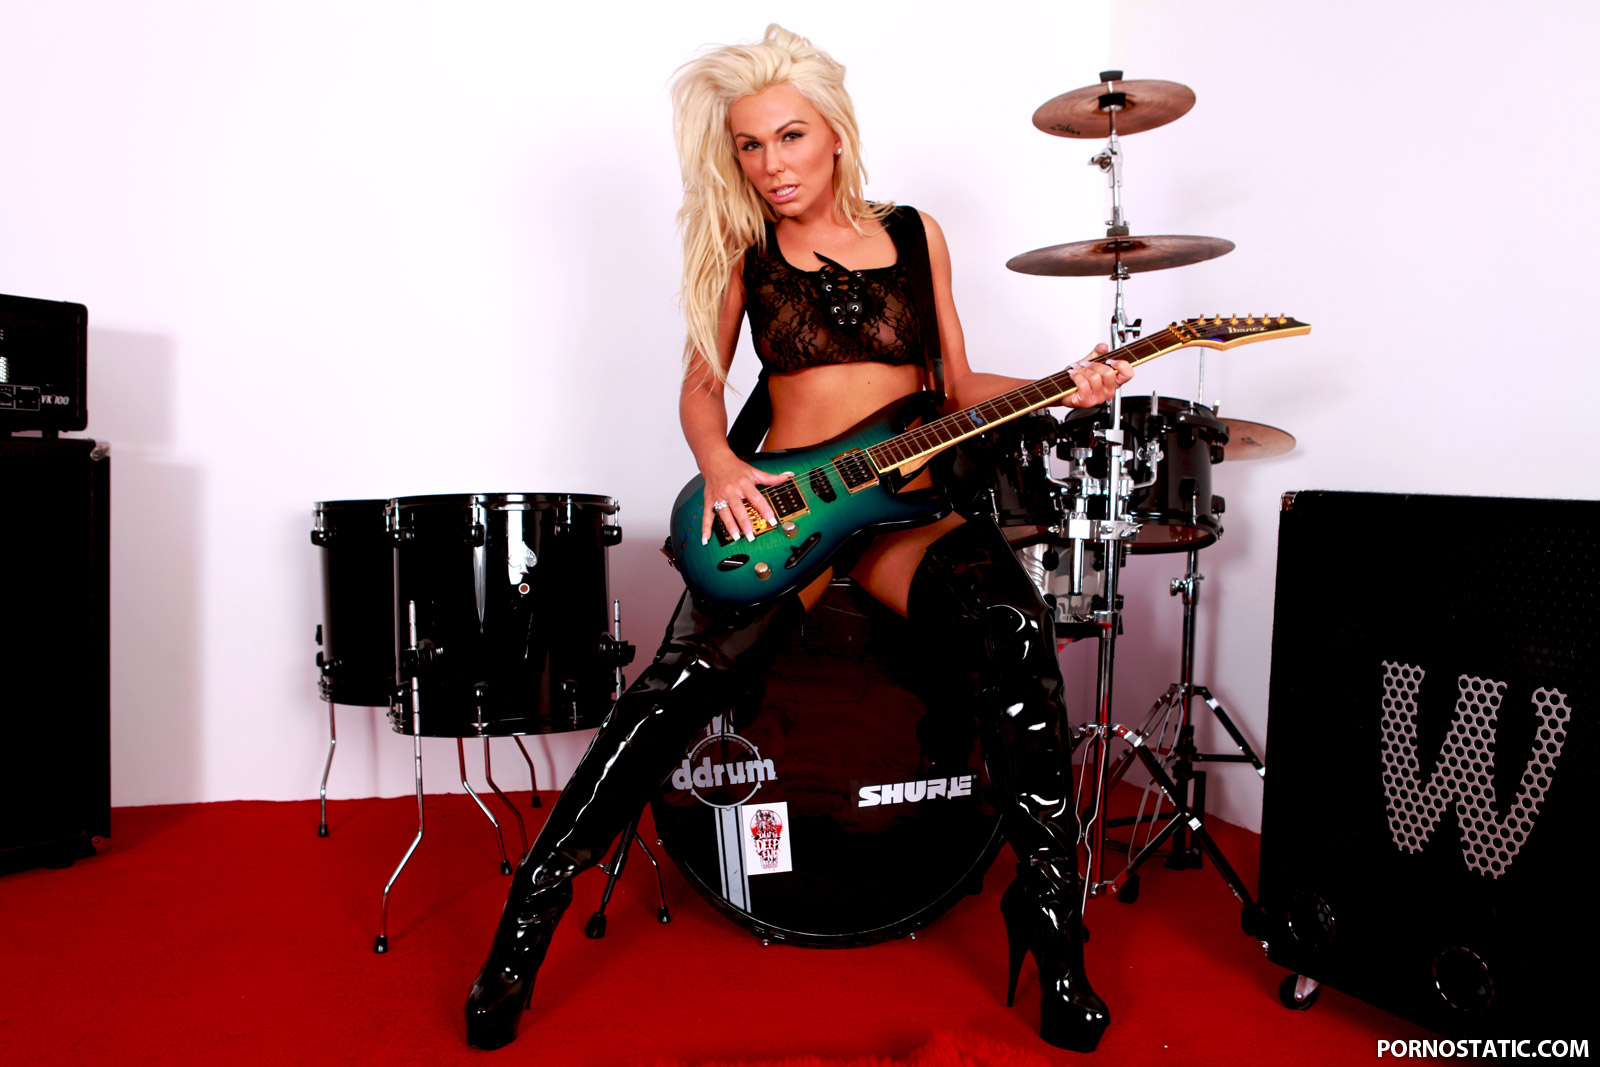 Caprice Jane - Super Hot Rock Chick